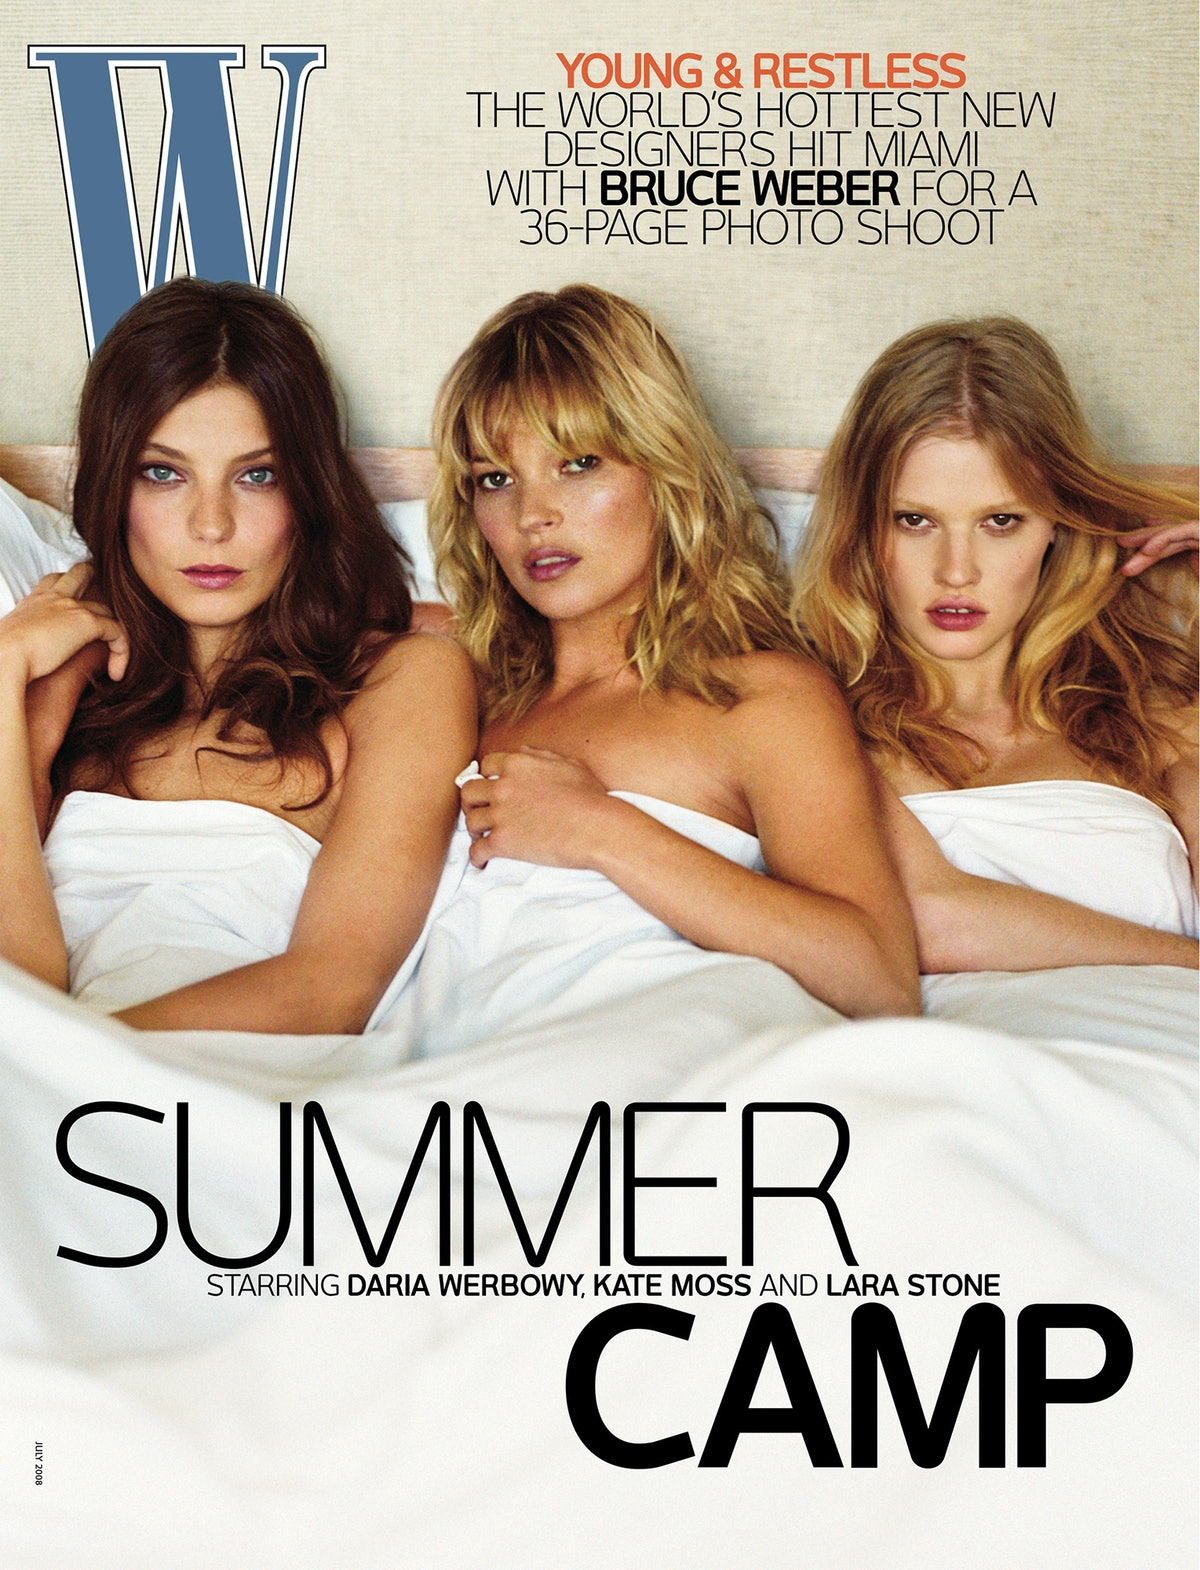 With Kate Moss, and Lara Stone